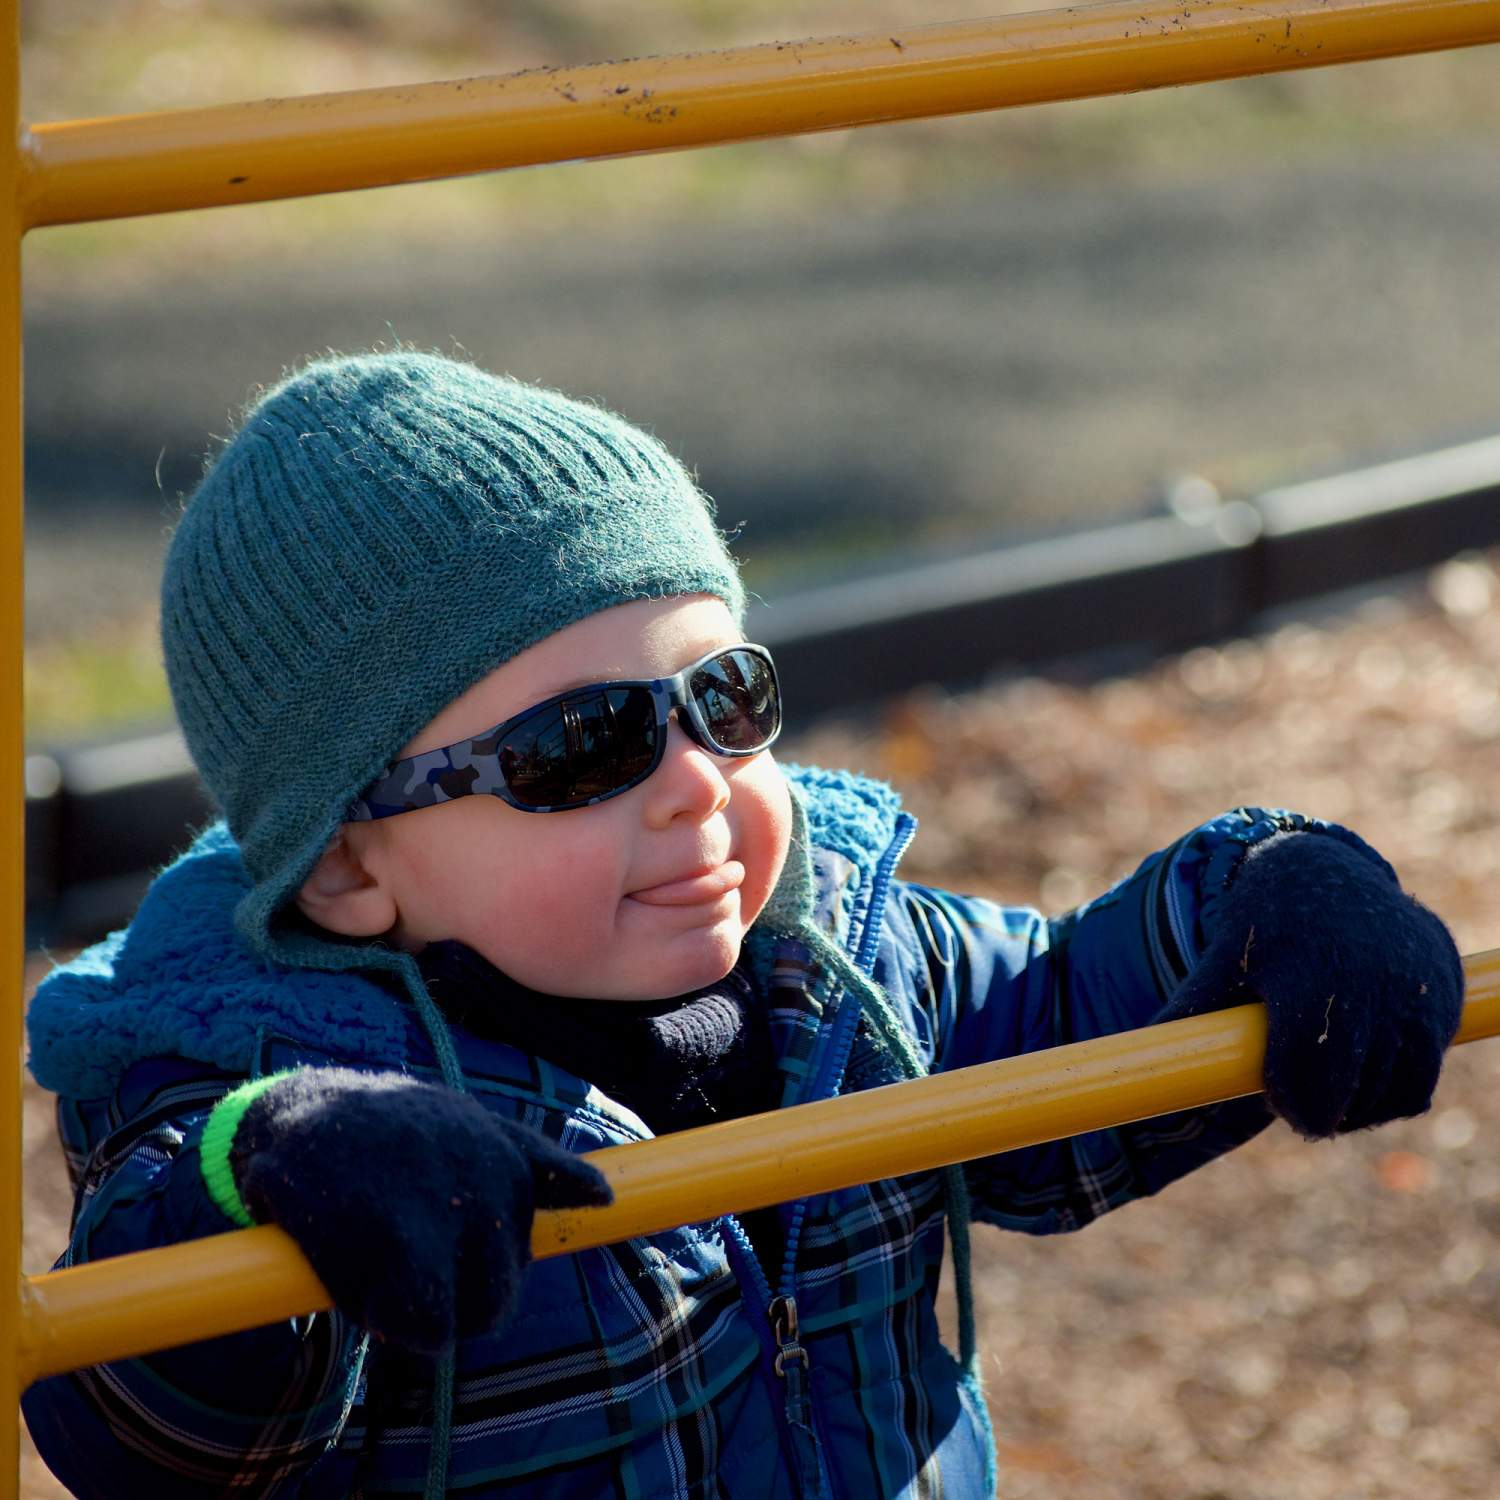 Baby at a playground with sunglasses on